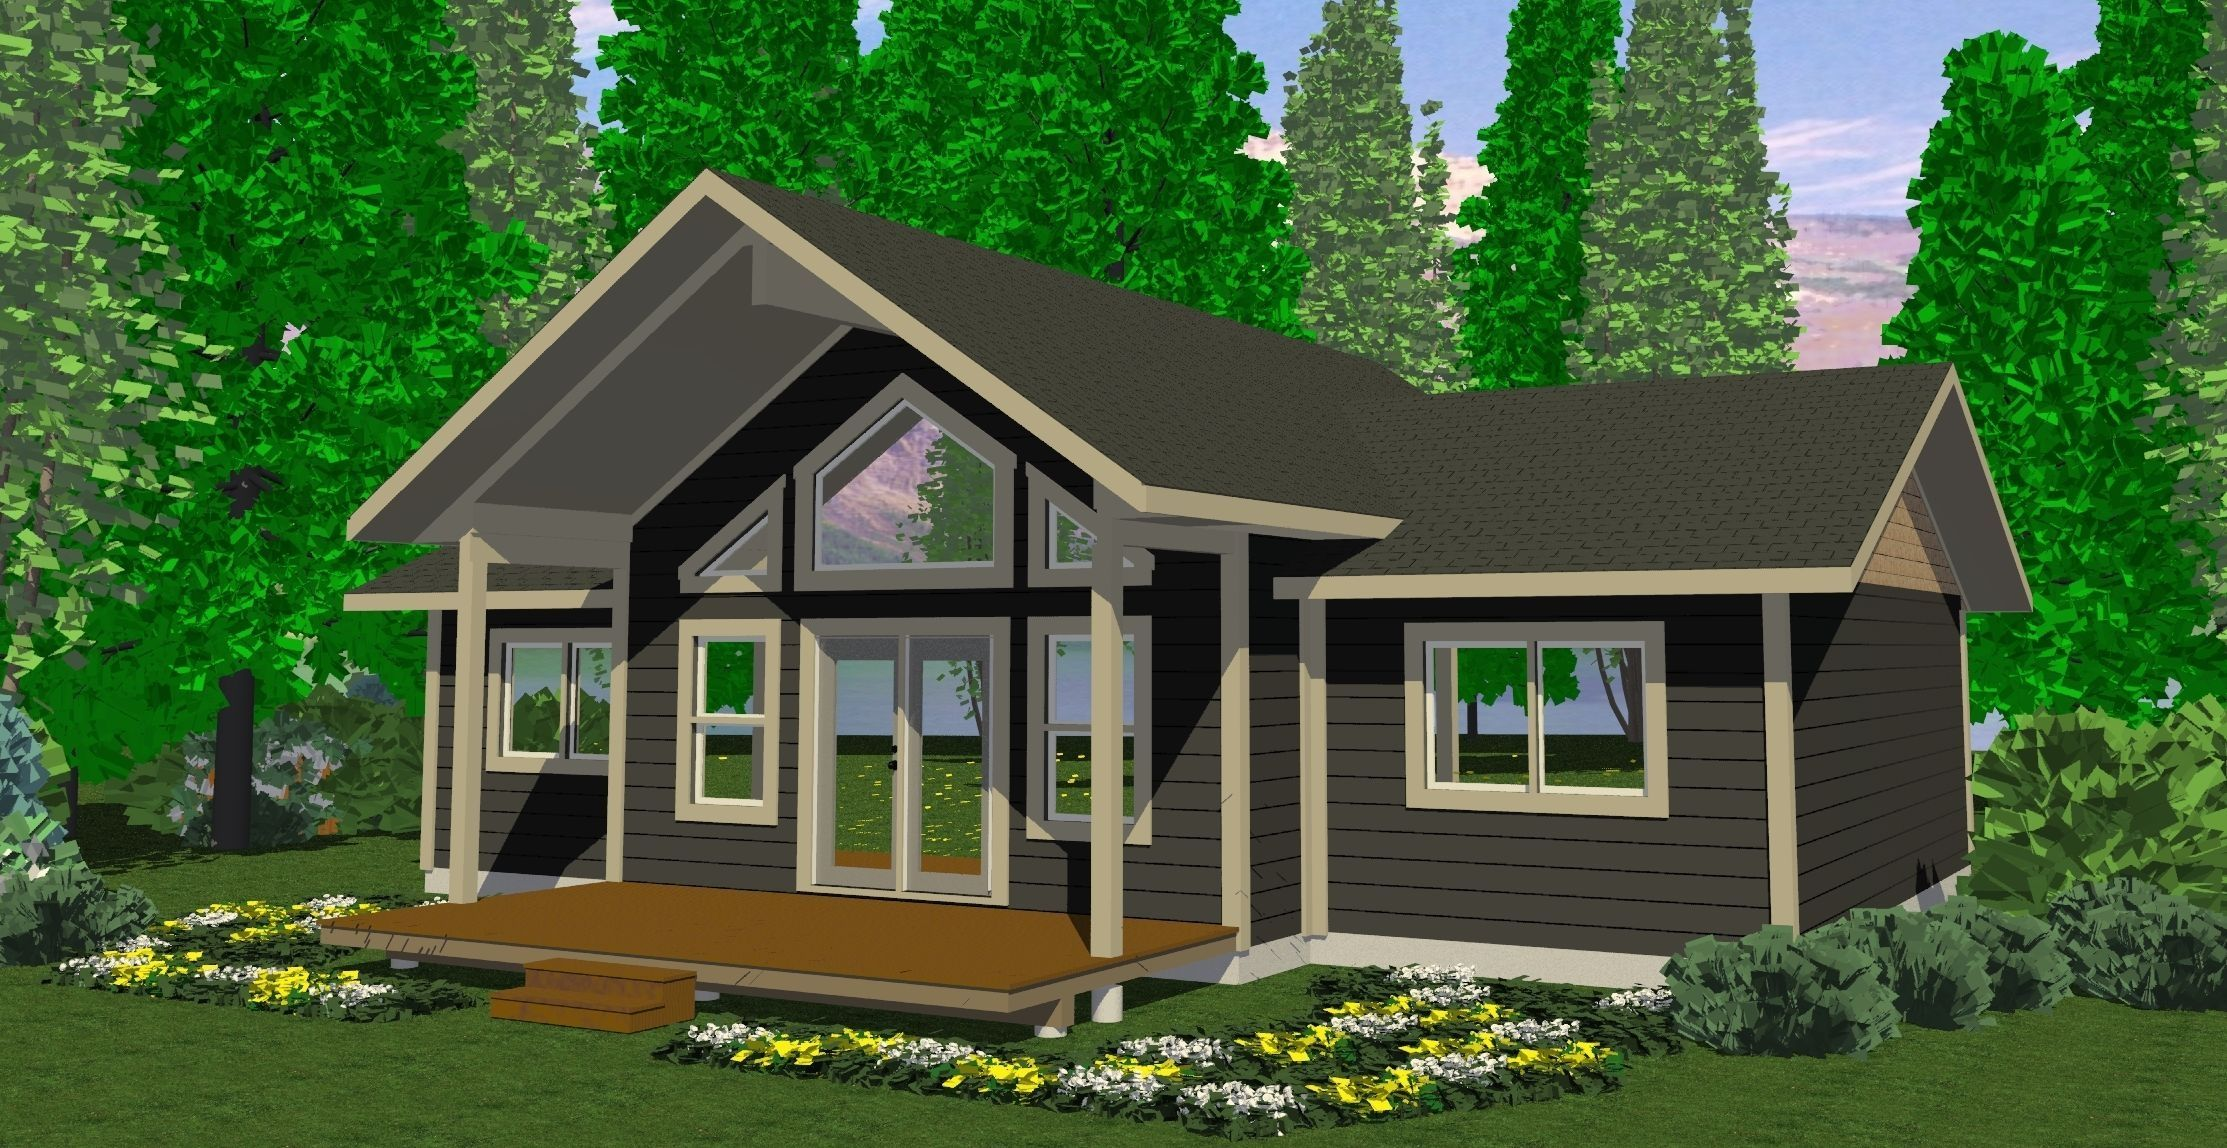 The Tabor Prefab Cabin and Cottage Plans